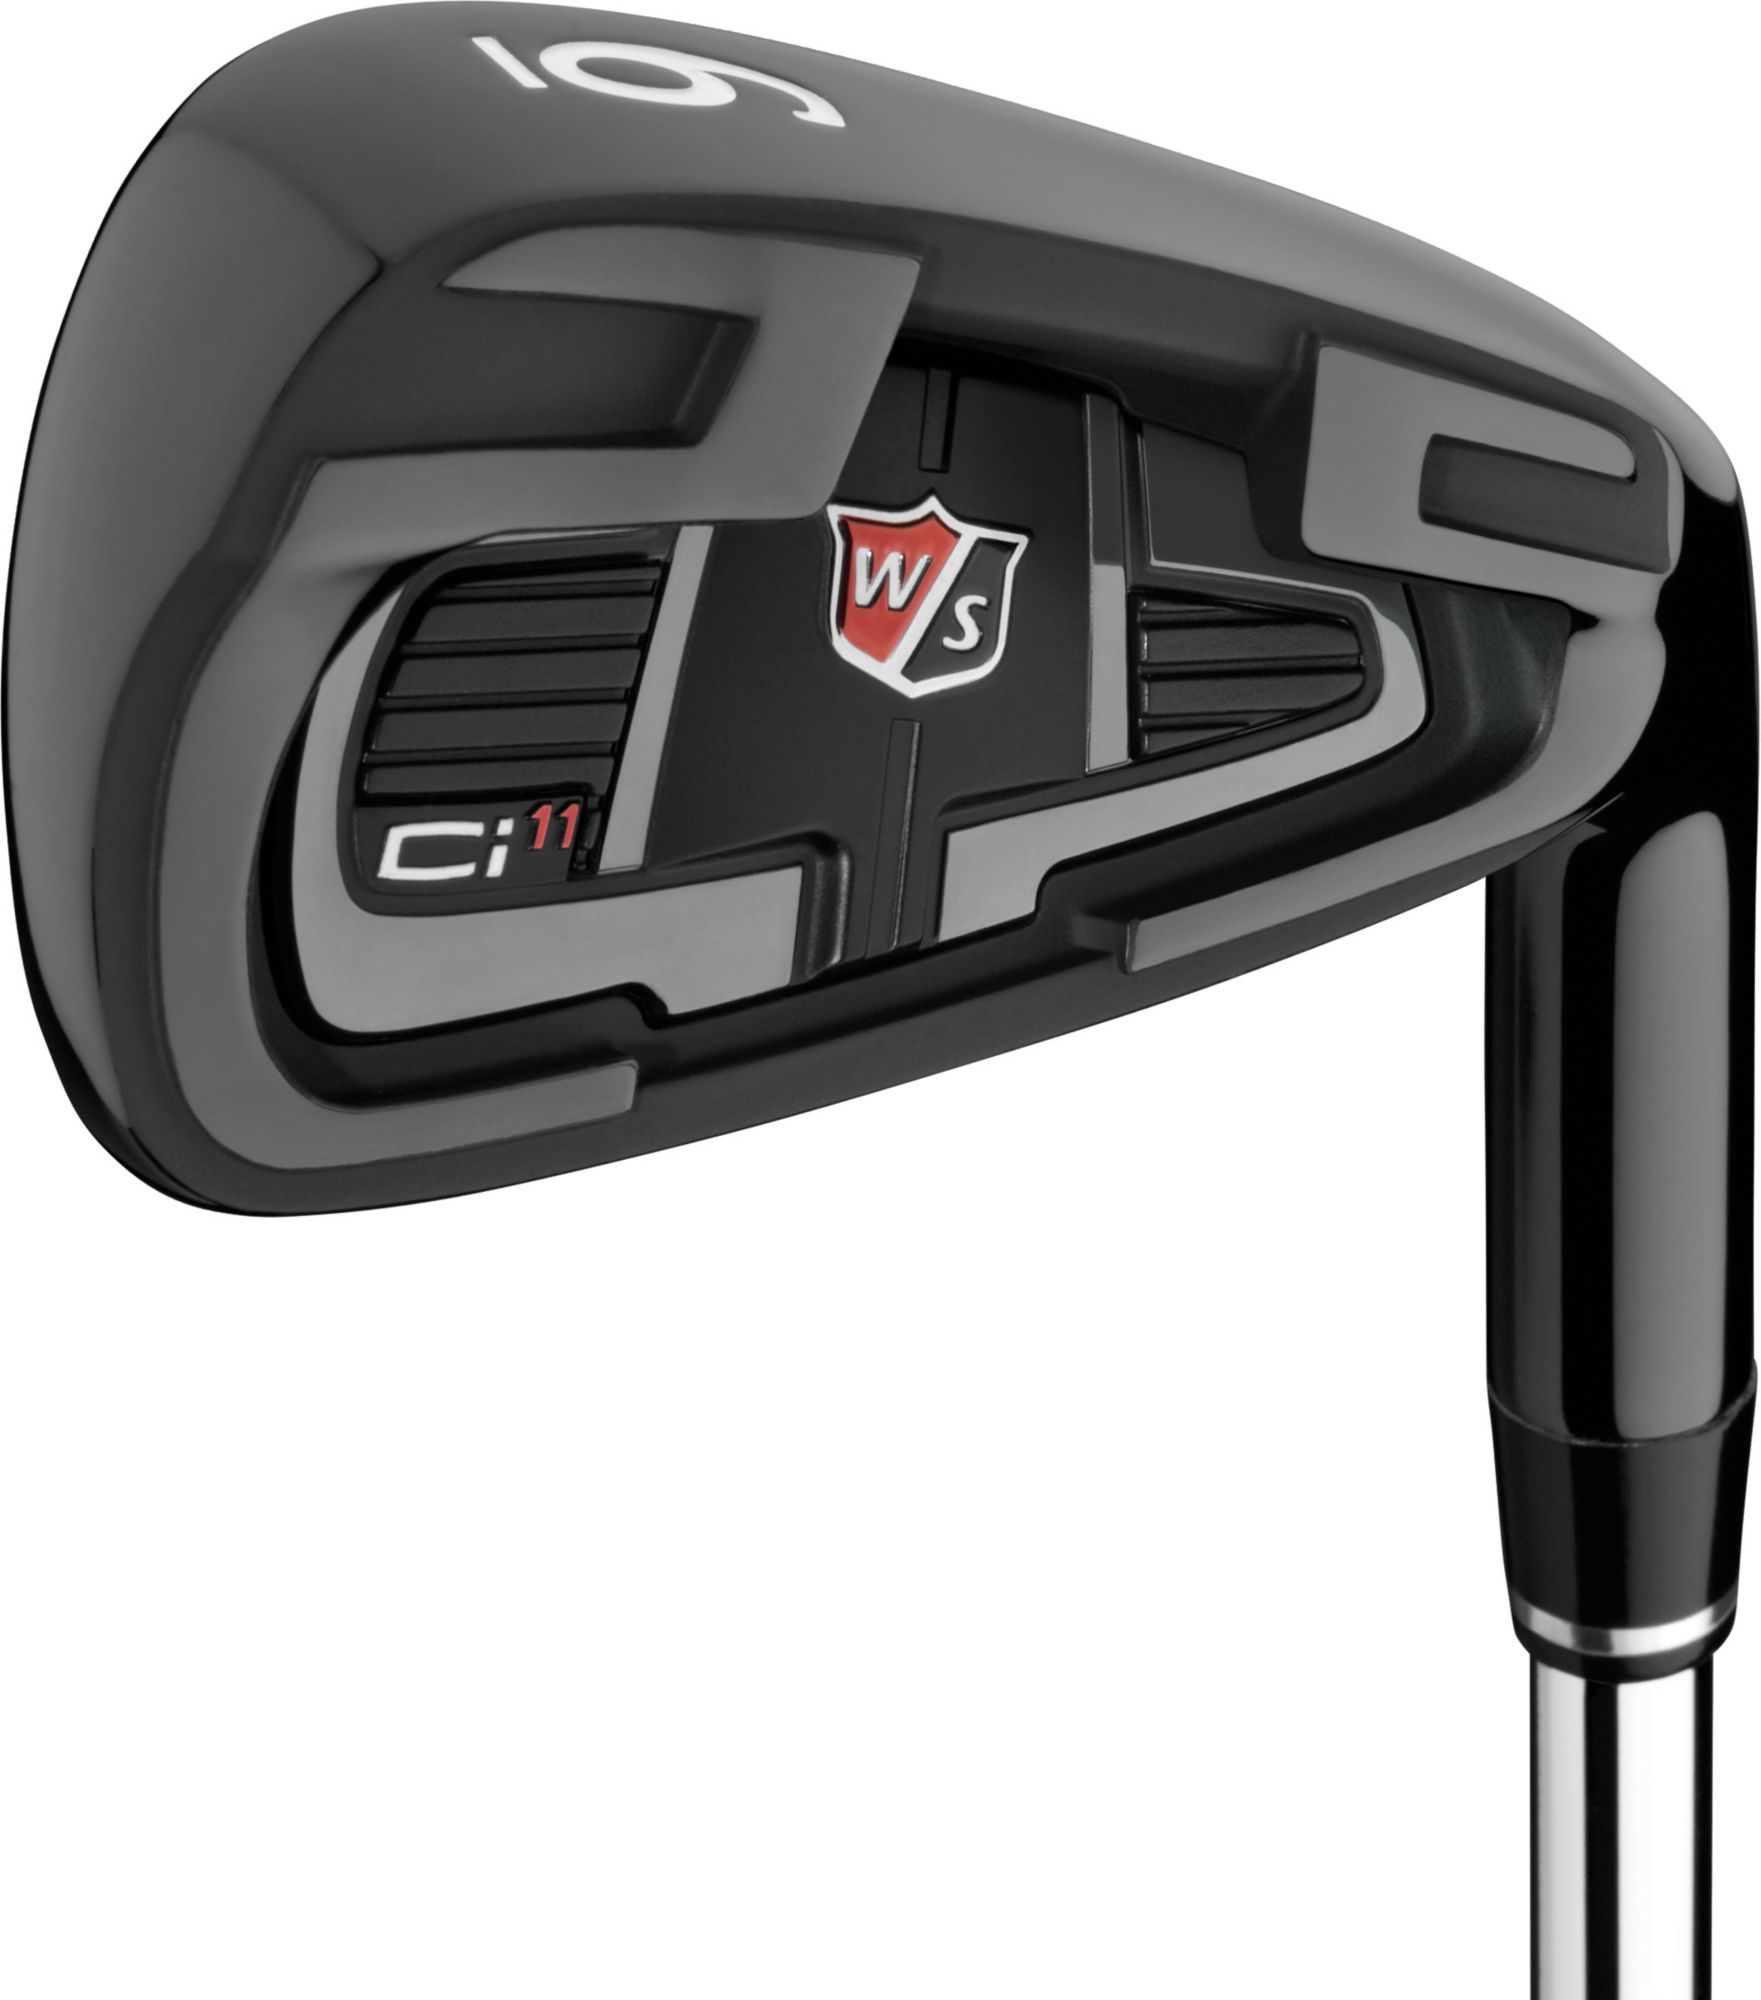 Wilson Men's Ci11 Irons   (Steel) 4 AW